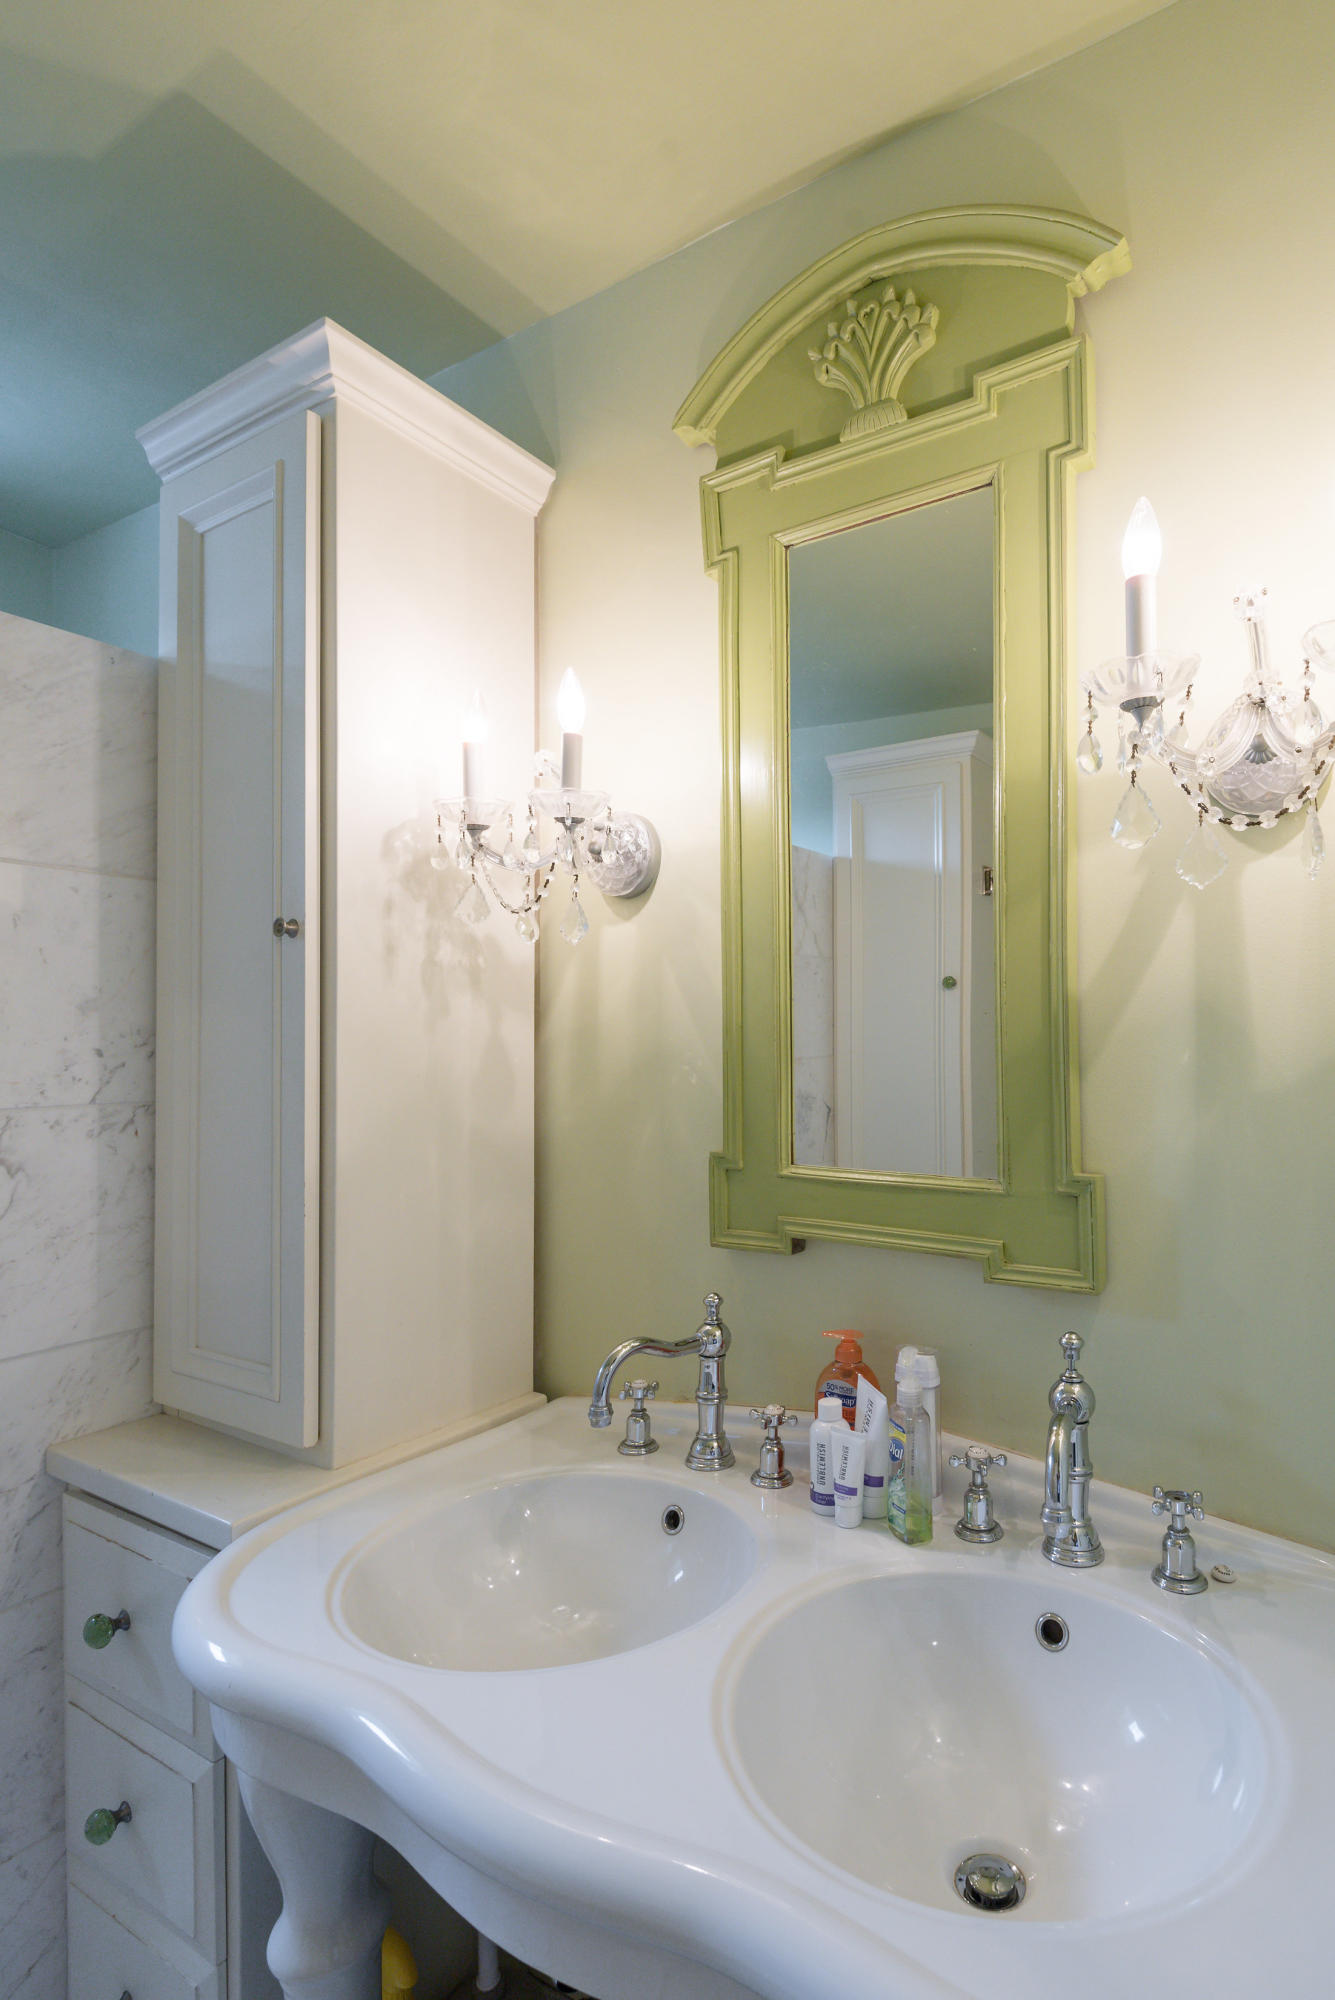 South of Broad Homes For Sale - 22 Church, Charleston, SC - 84